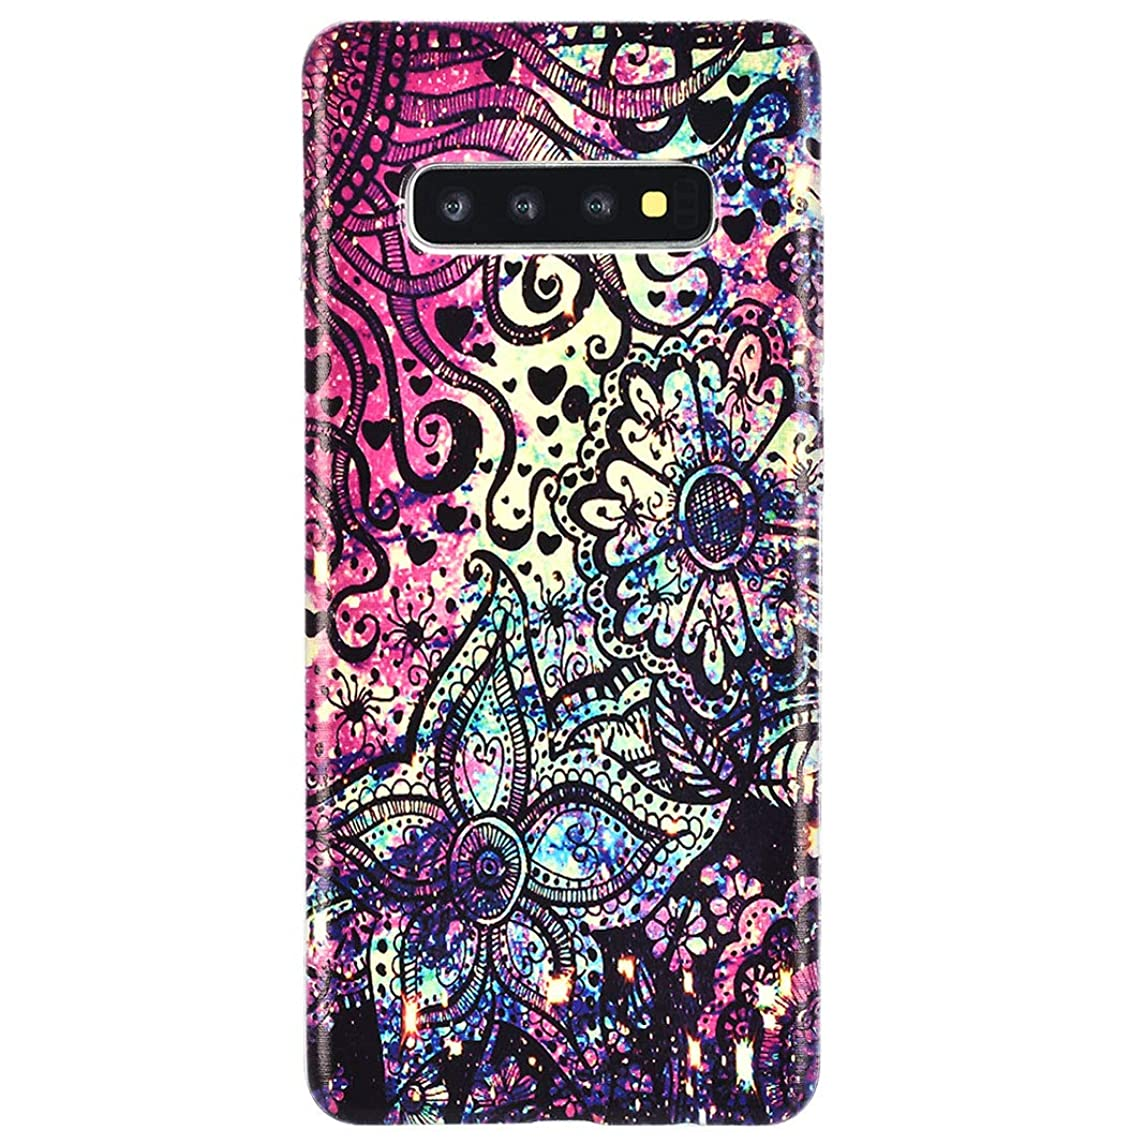 For Galaxy S10 Flexible Cover, Transparent TPU Skin Antiskid Anti-Scratch Protective Phone Case Phone Cover Colorful Painting Compatible with Samsung Galaxy S10, Style-04